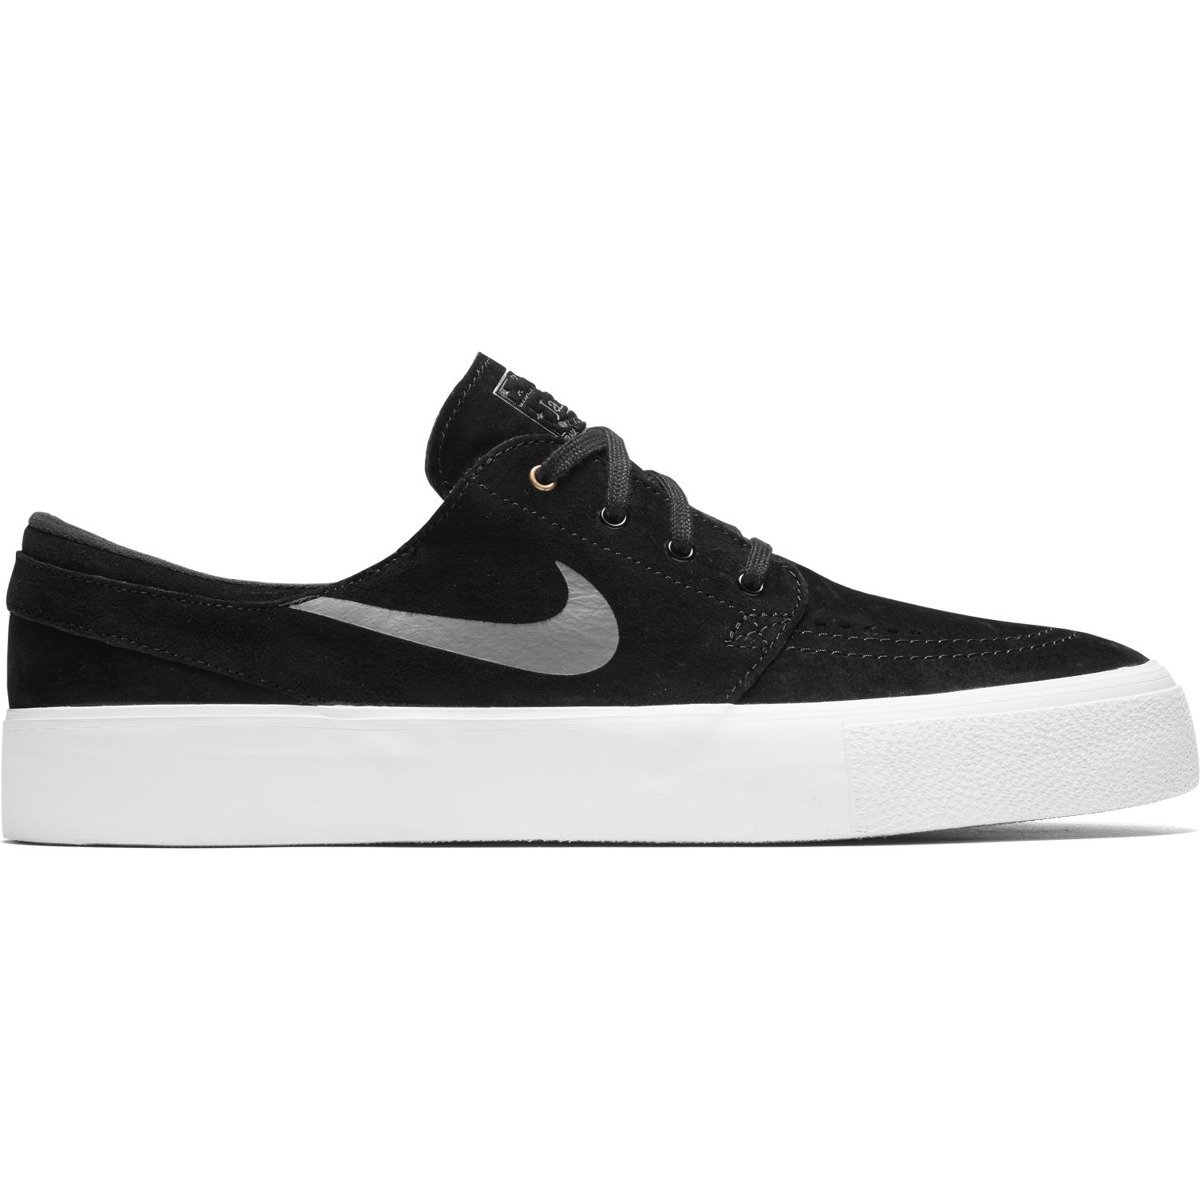 shoes nike sb zoom stefan janoski ht black dark grey-metallic gold-white  Click to zoom ... 5e21ab6139f9